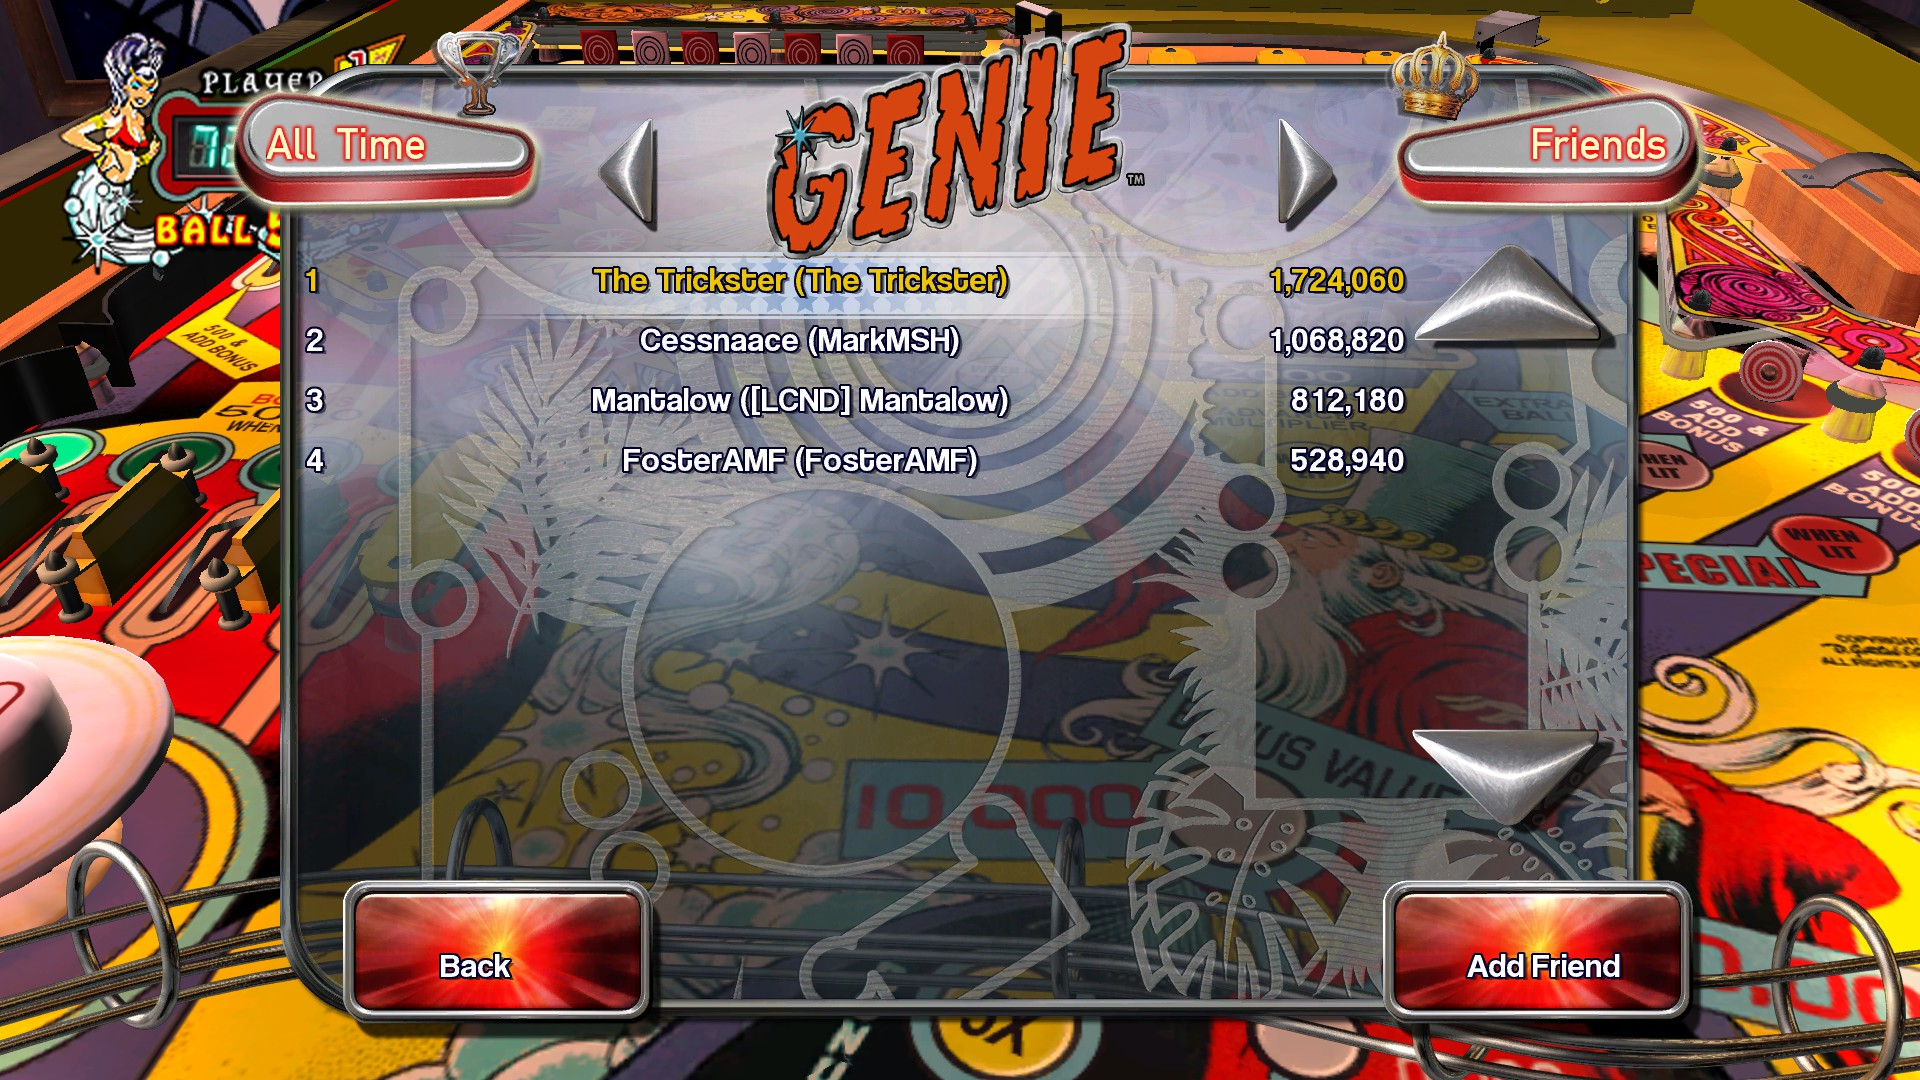 TheTrickster: Pinball Arcade: Genie (PC) 1,724,060 points on 2016-02-10 06:22:50